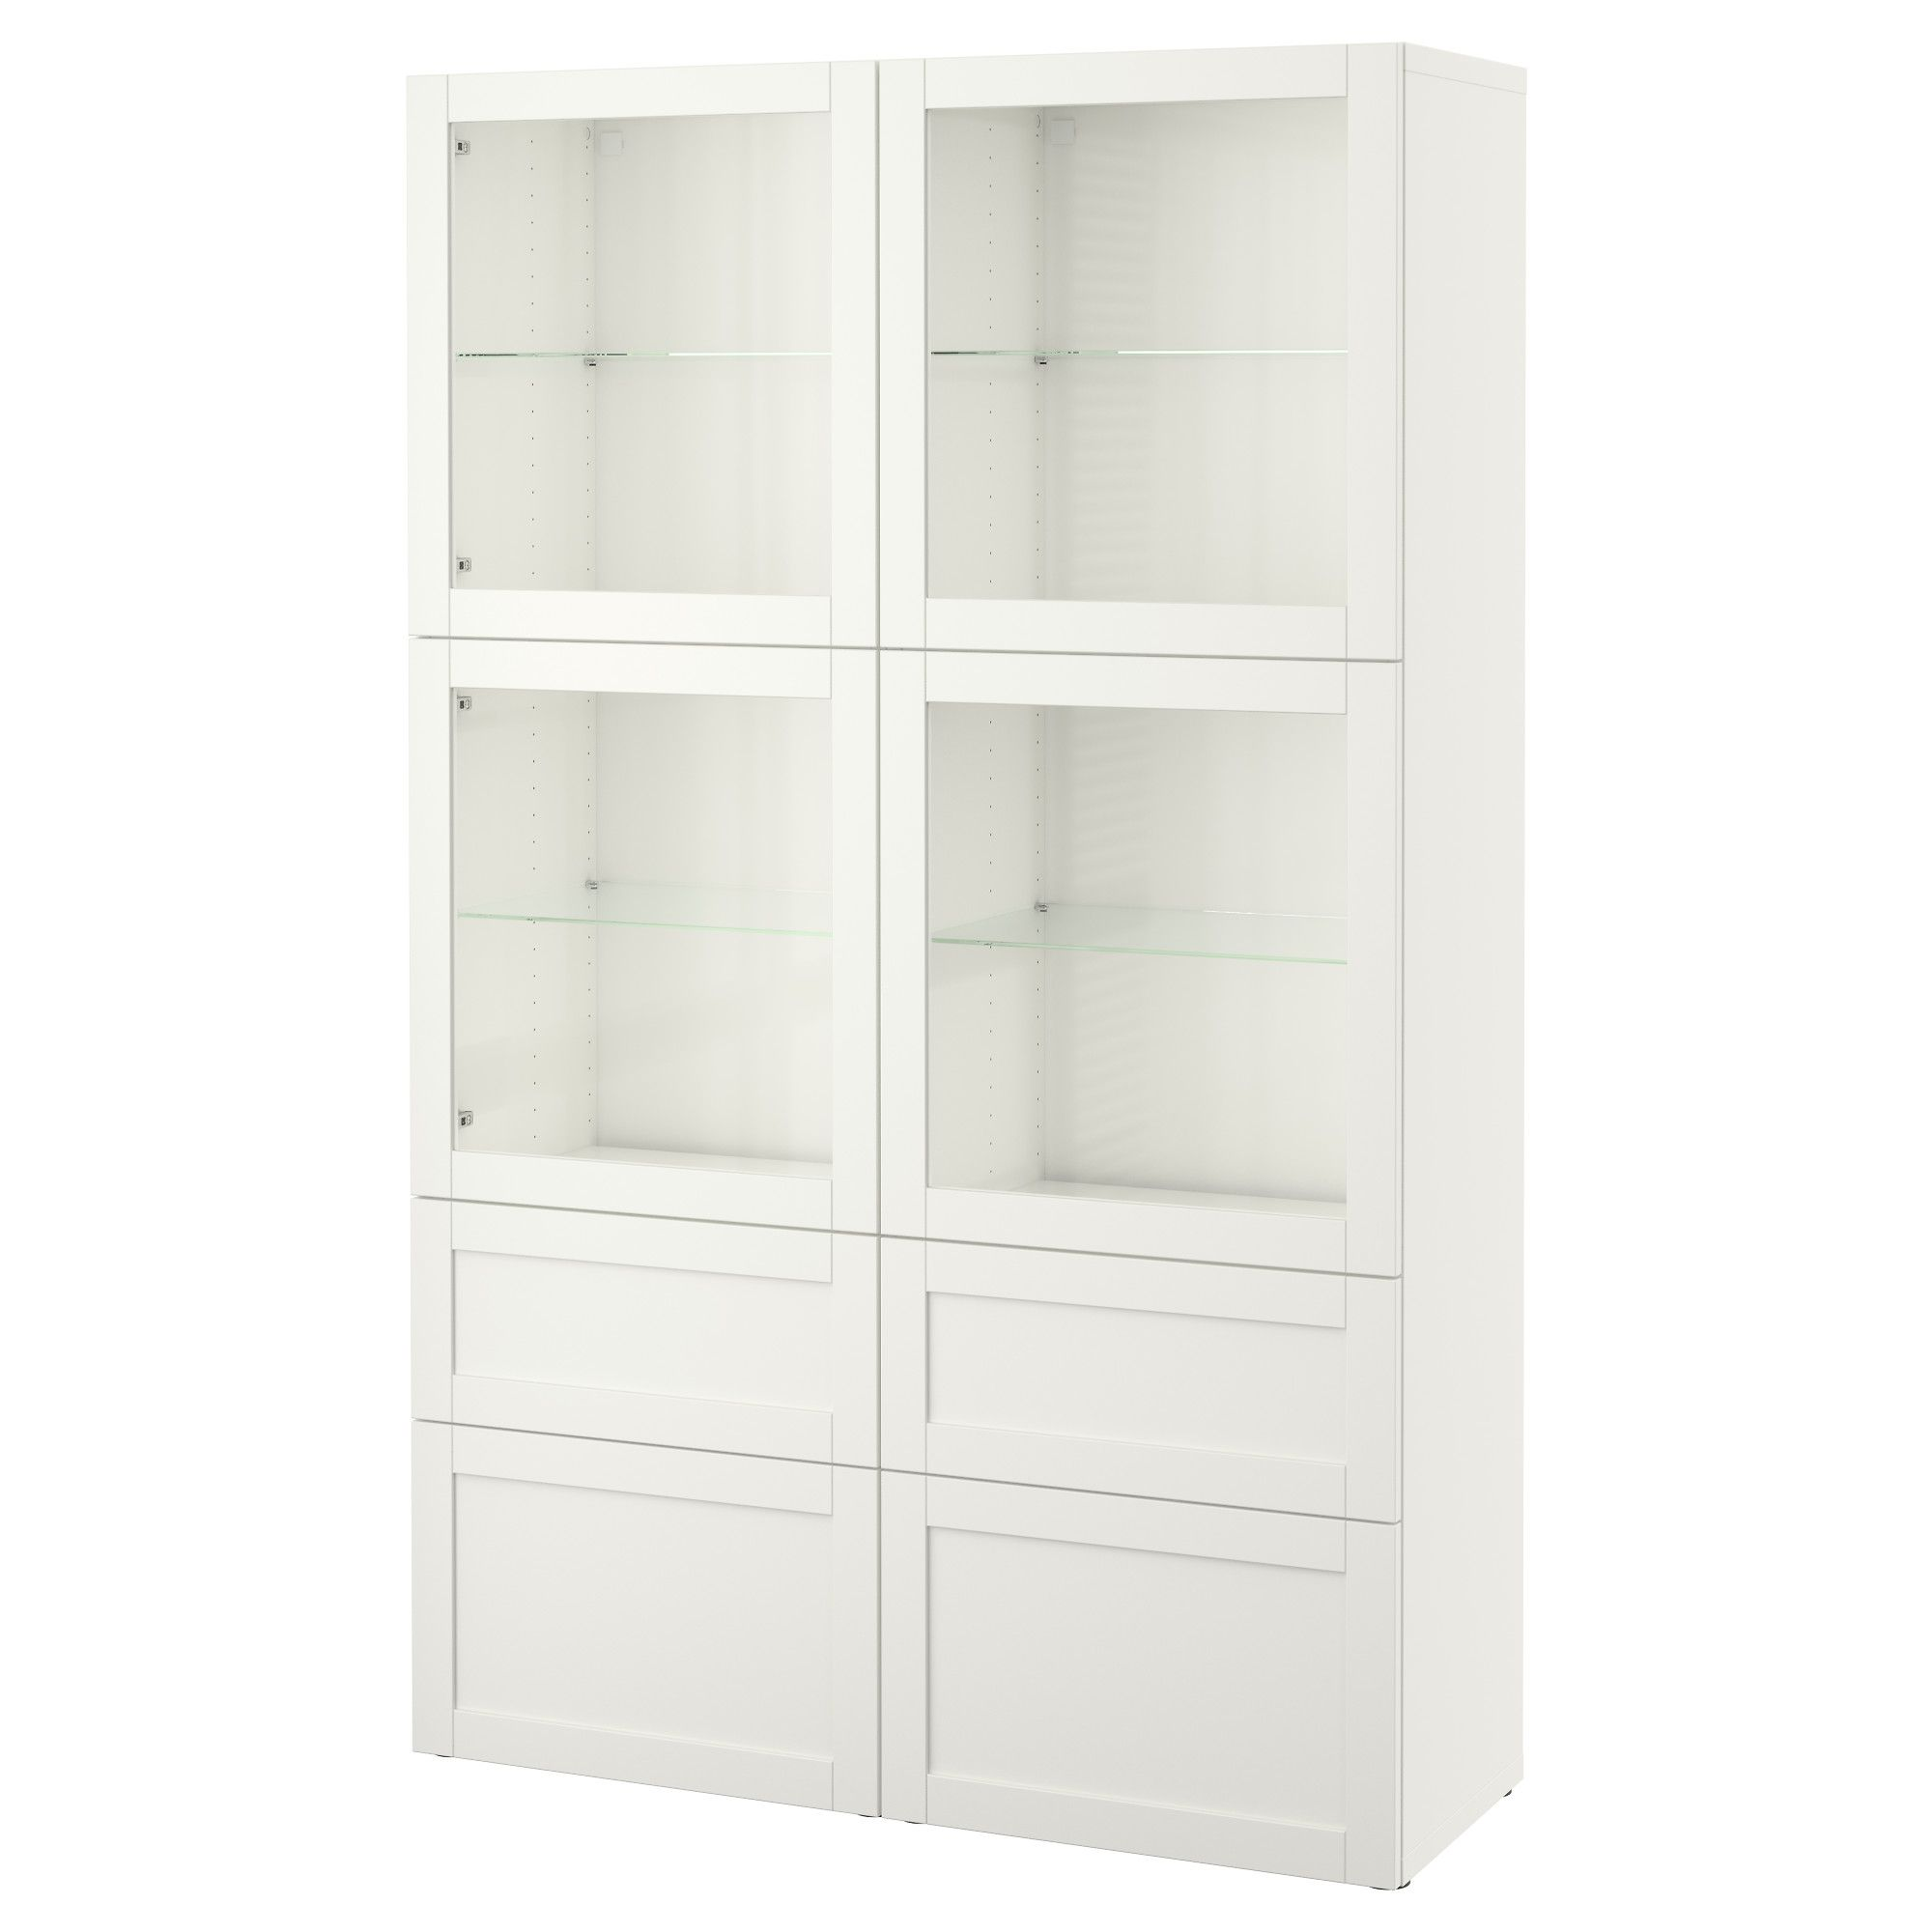 vitrine ikea en verre ikea omlopp led clairage duarmoire blanc de vitrine spot tagre lumire. Black Bedroom Furniture Sets. Home Design Ideas